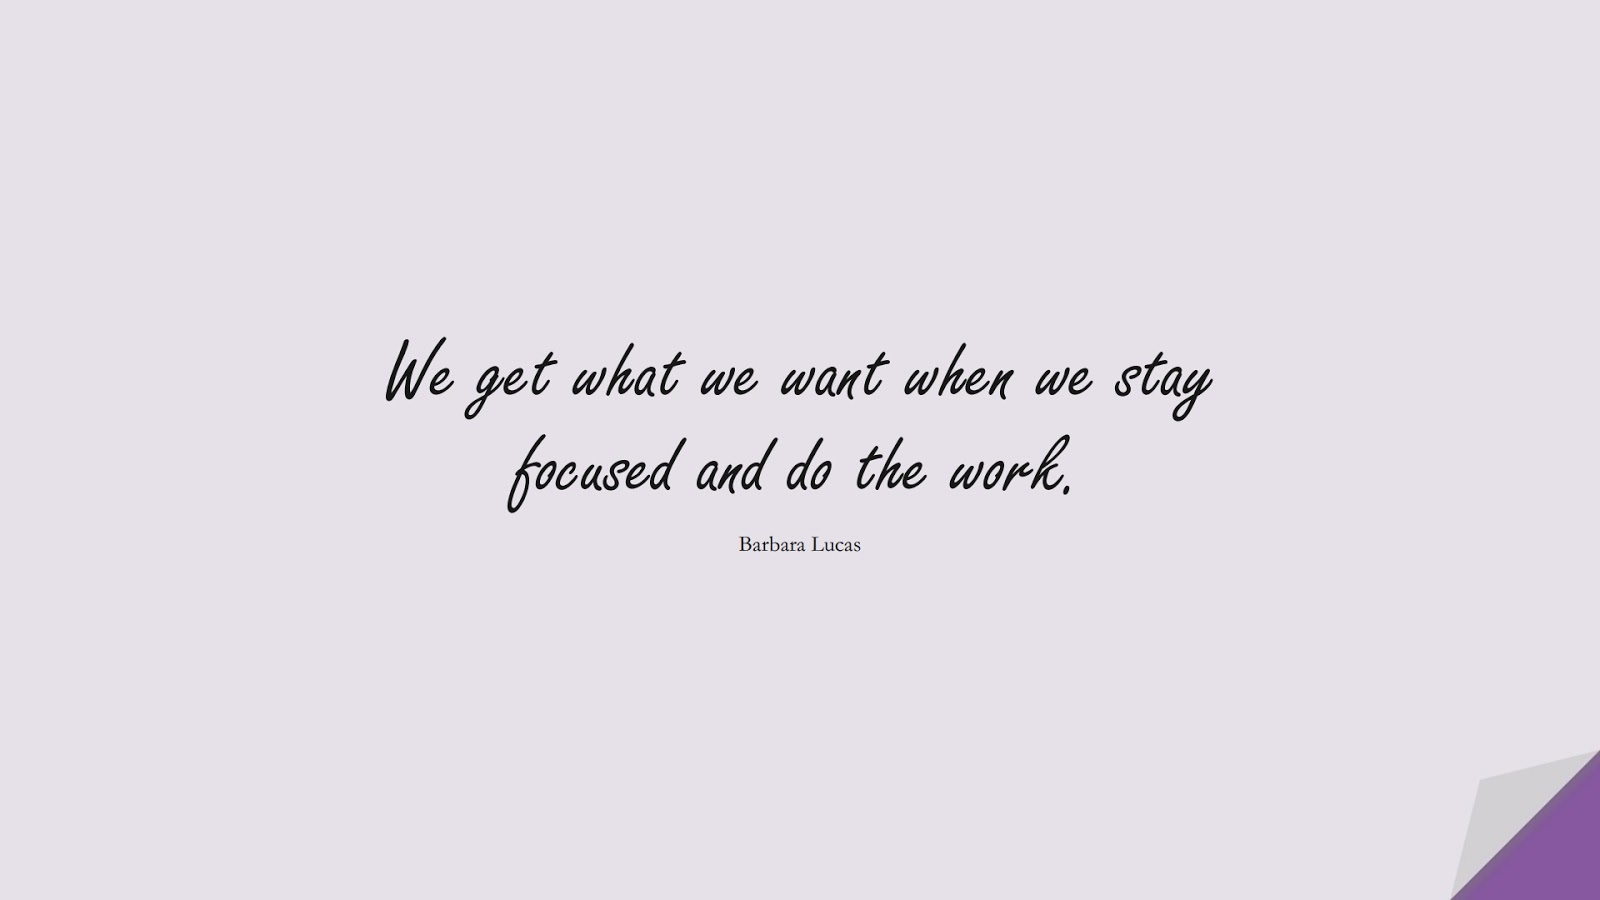 We get what we want when we stay focused and do the work. (Barbara Lucas);  #PositiveQuotes